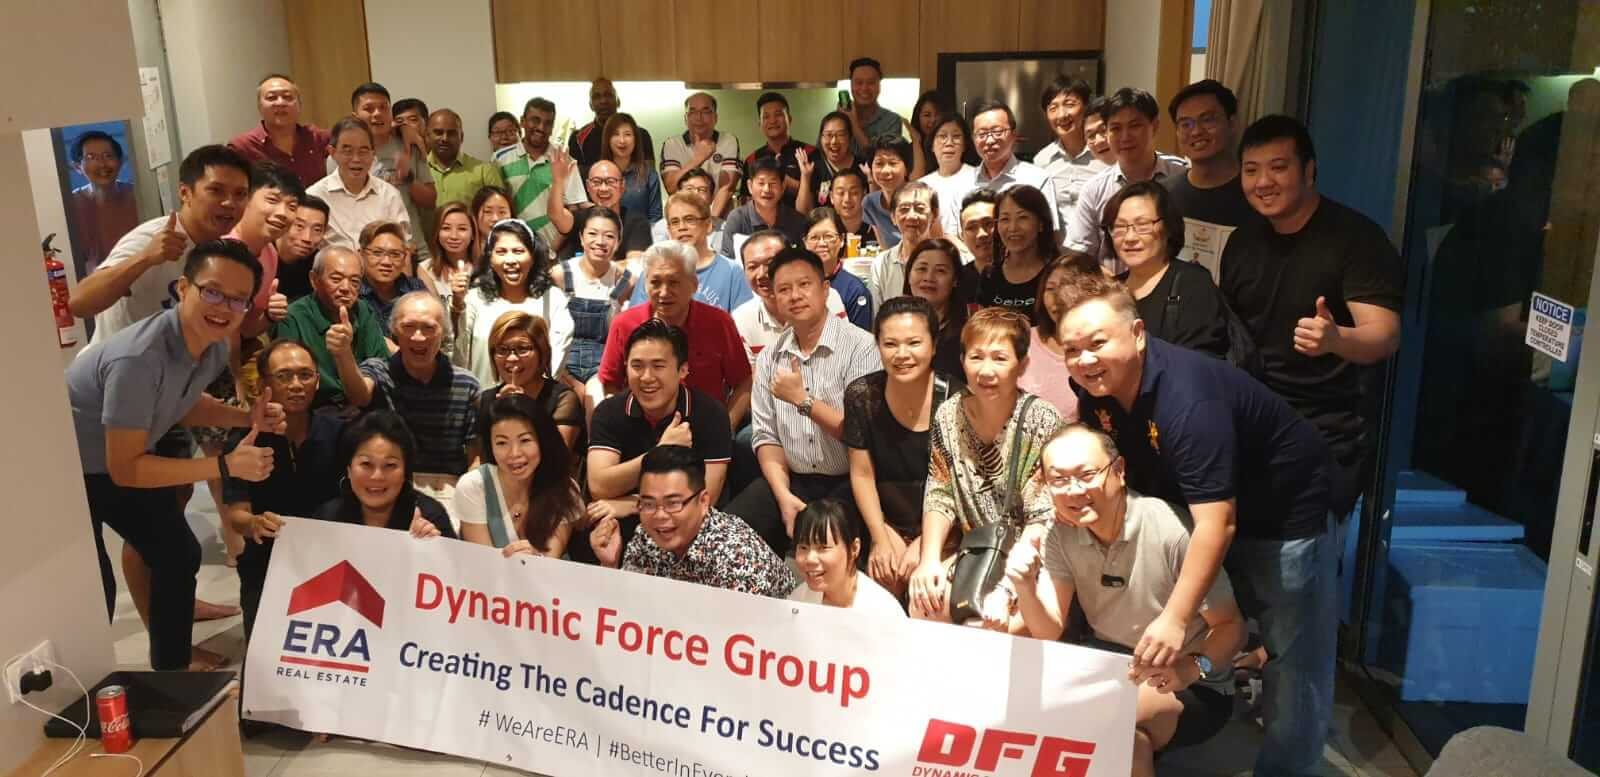 Dynamic Force Group quarterly retreat at chevrons - Whole Group 01